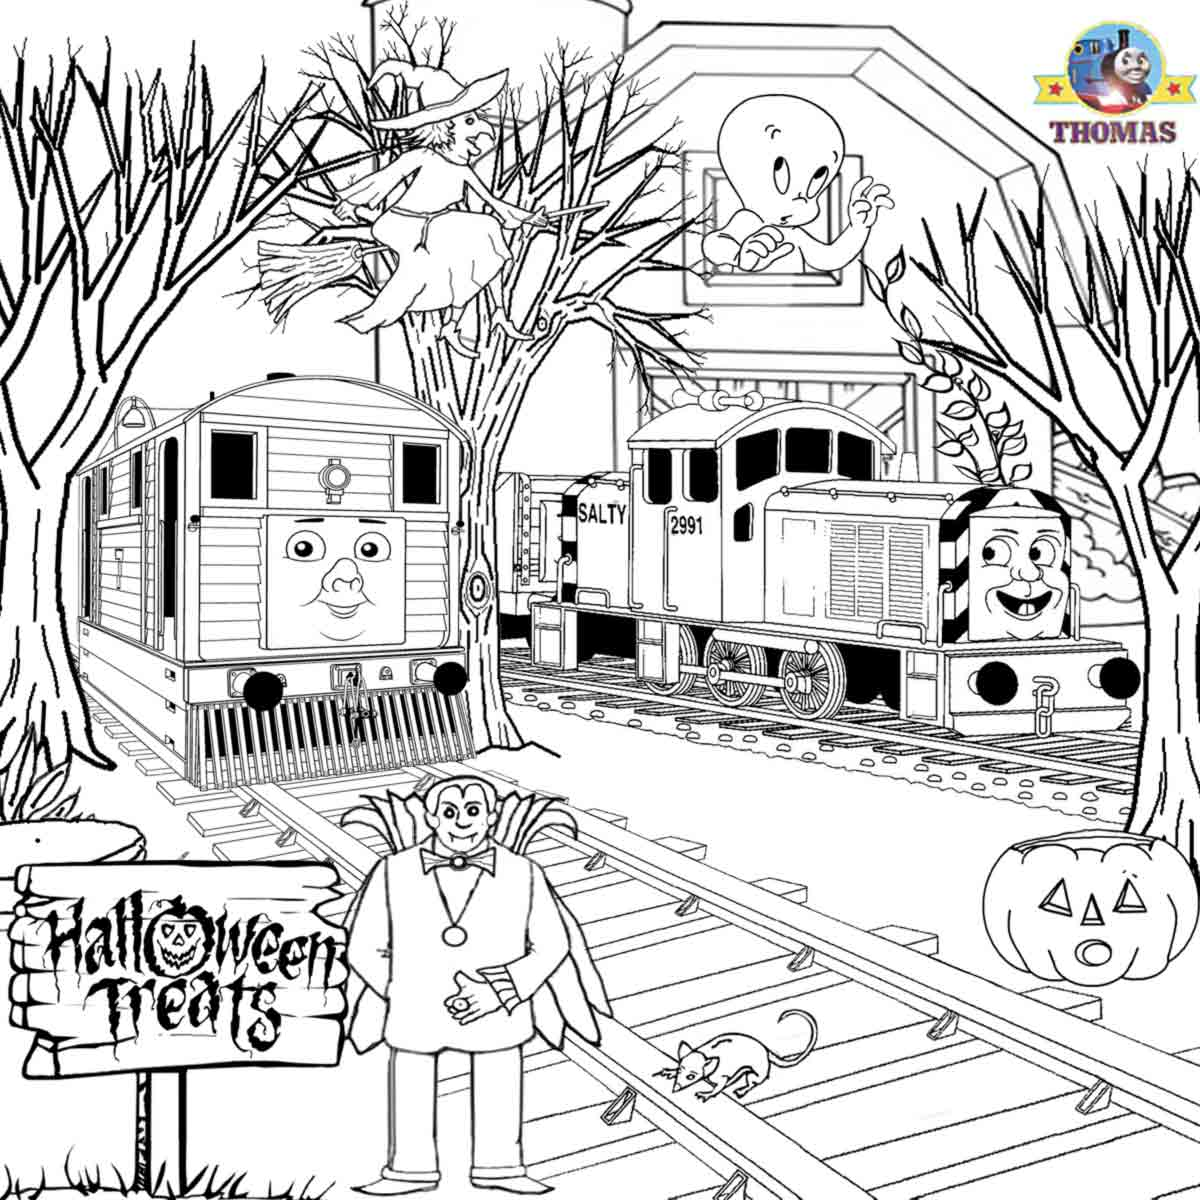 thomas the train halloween coloring pages